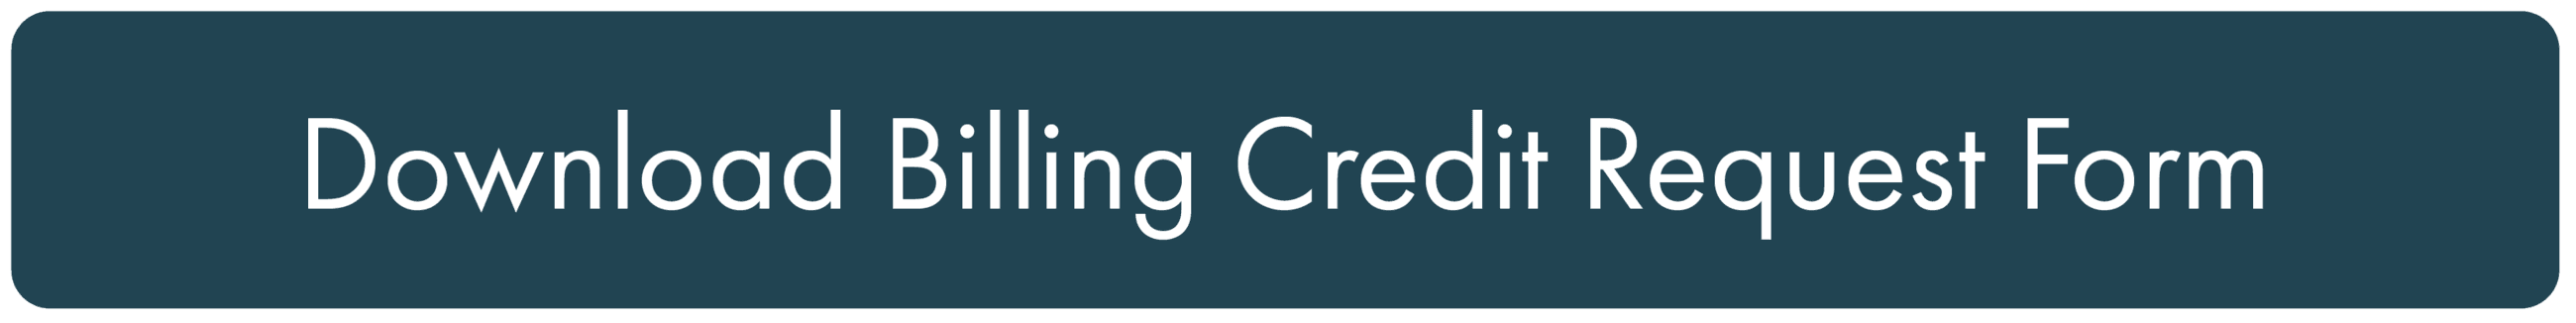 Download_Billing_Credit_Request_Form Opens in new window